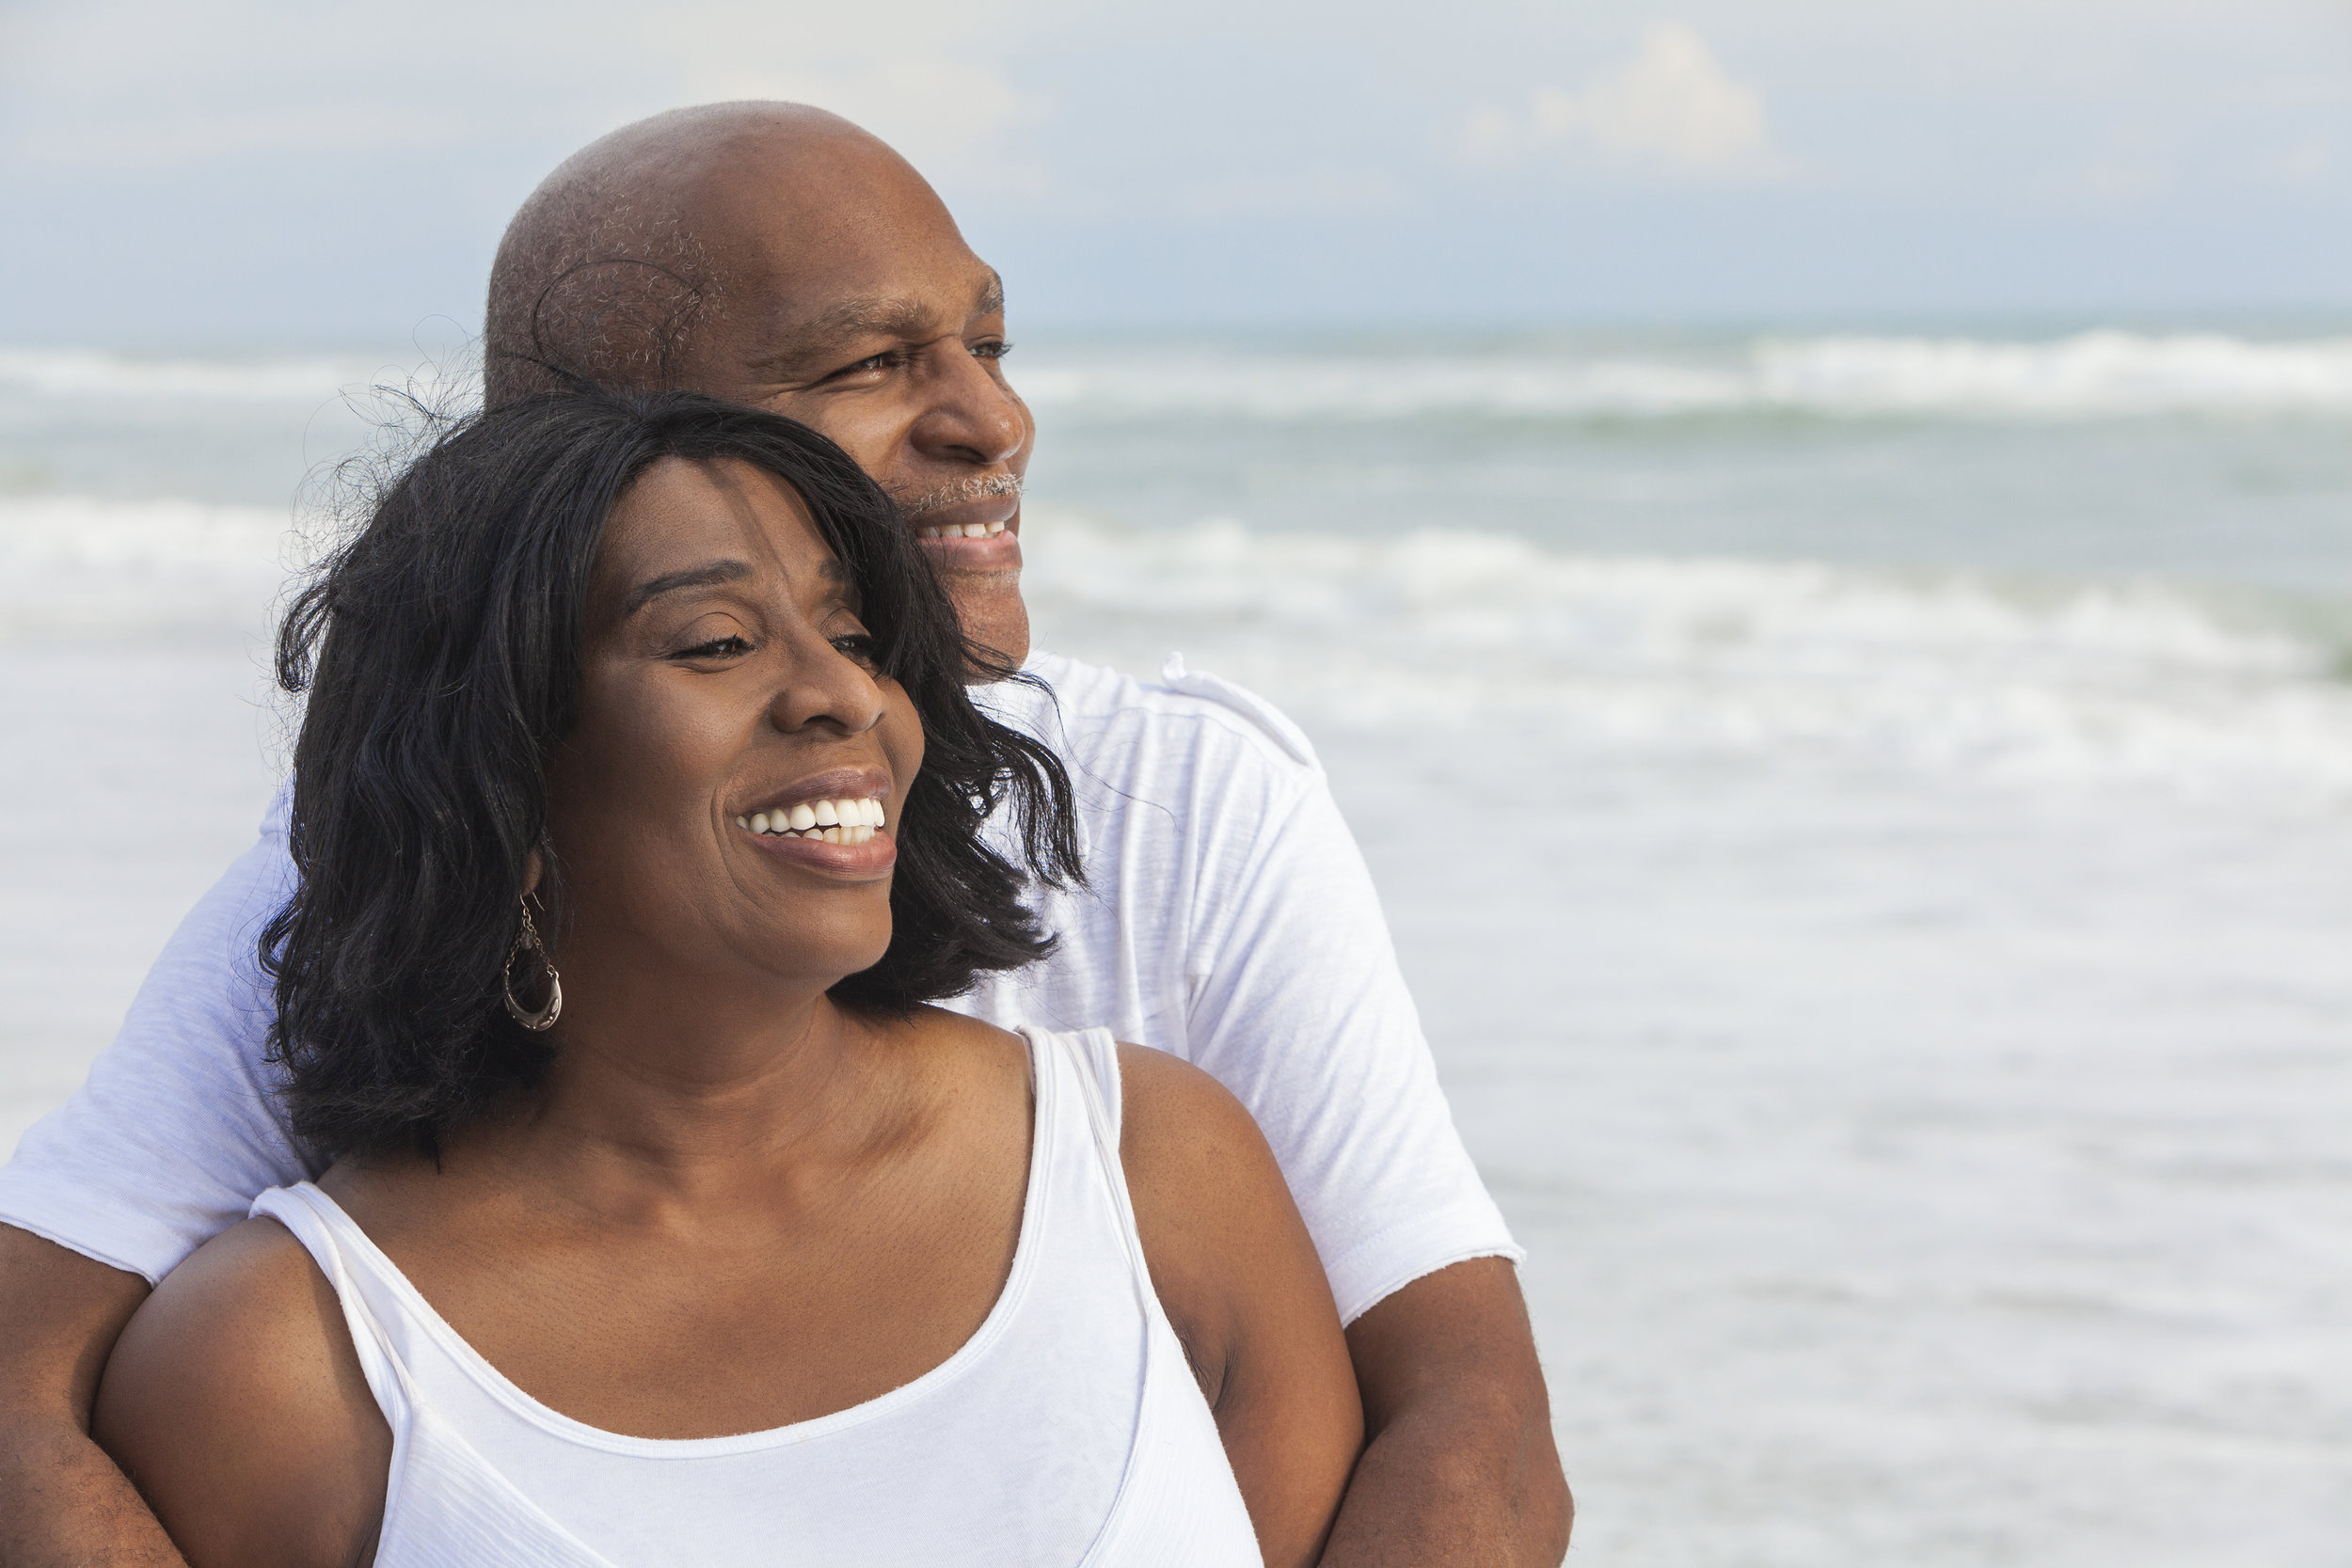 Planning for retirement, include regular massage therapy sessions in your plans.